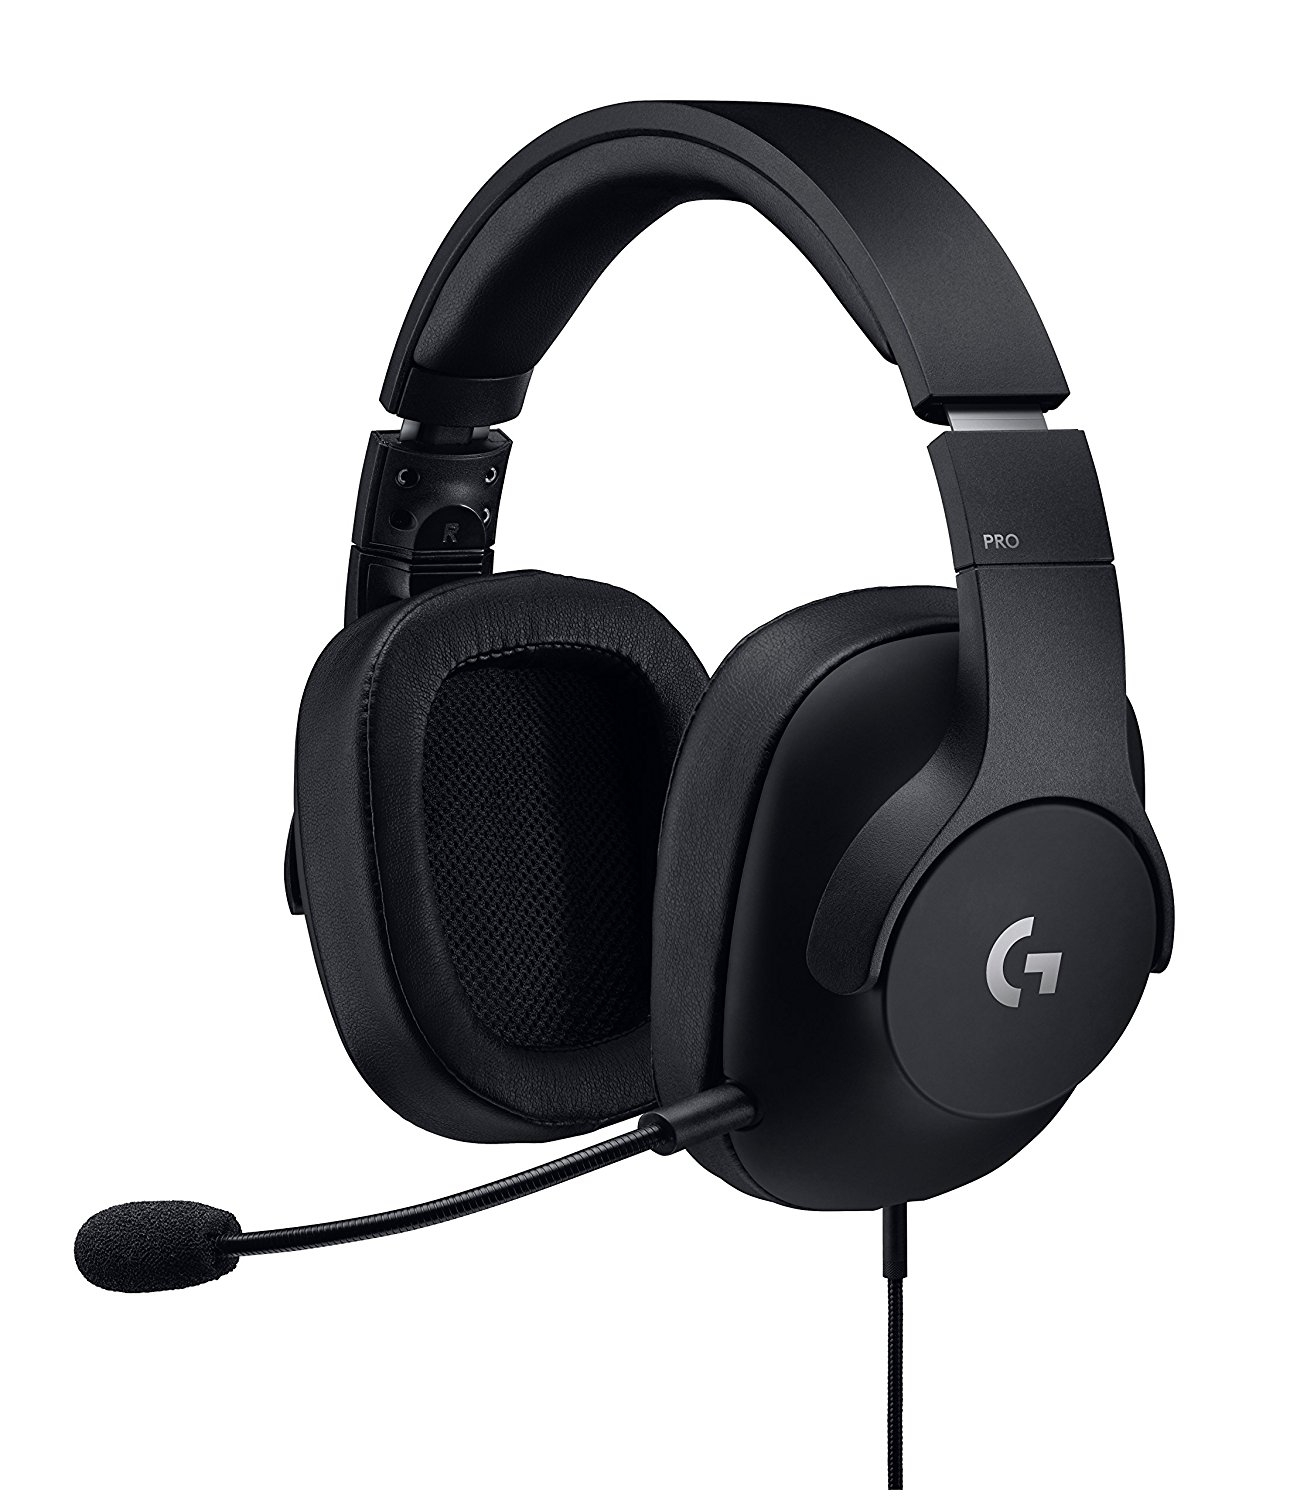 Logitech G Pro Gaming Headset Review: - Headphones - PC